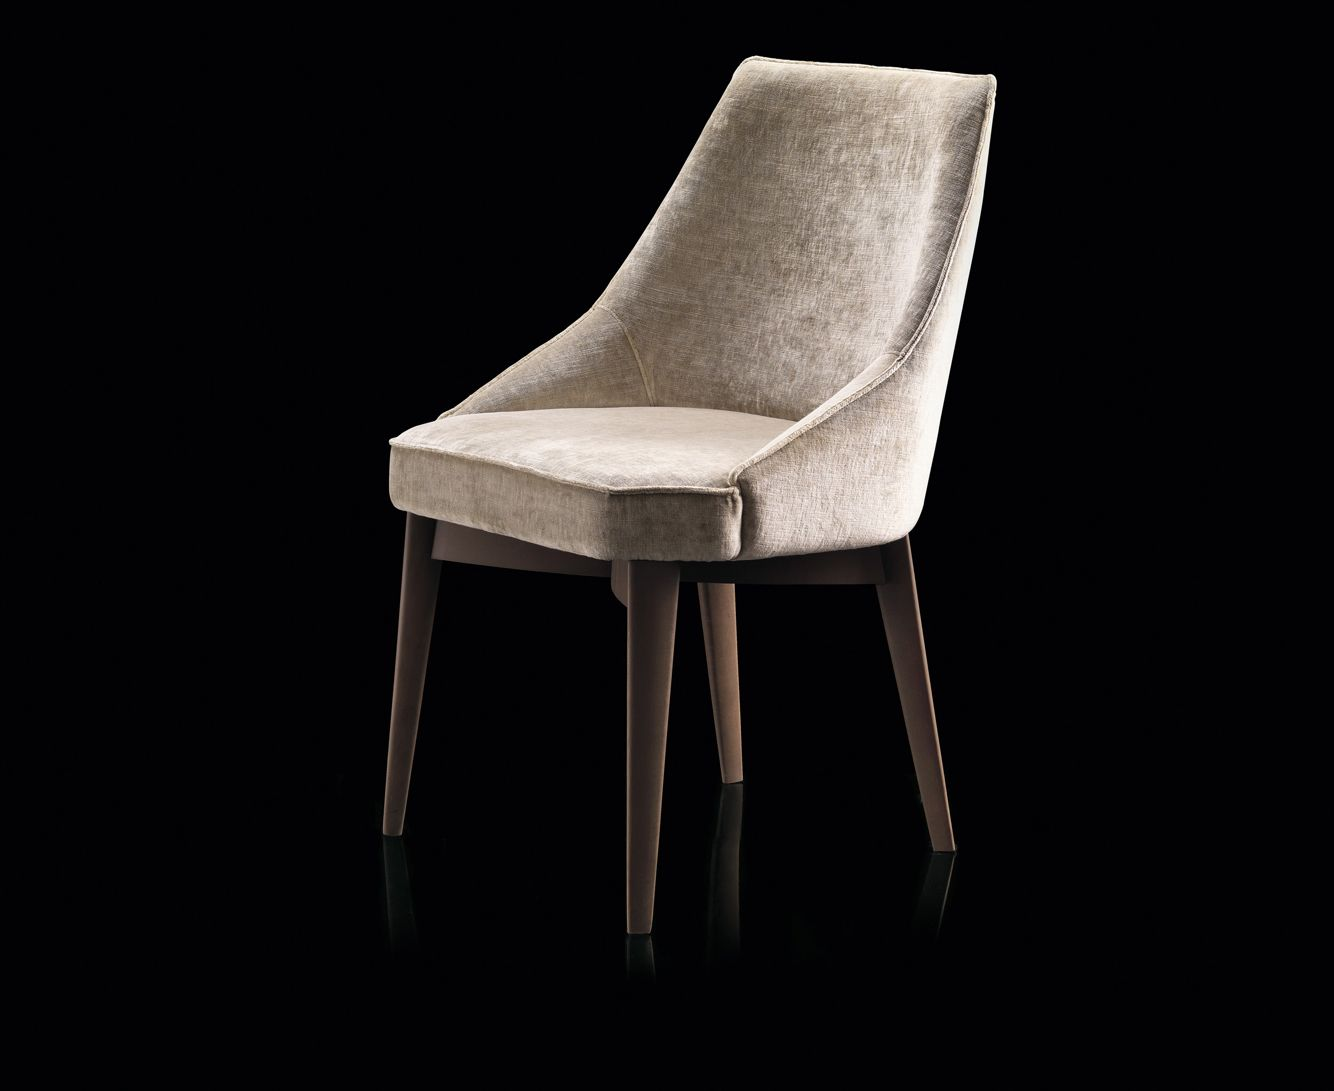 Henge, made in Italy: Is-a chair, project by Isabella Genovese ...